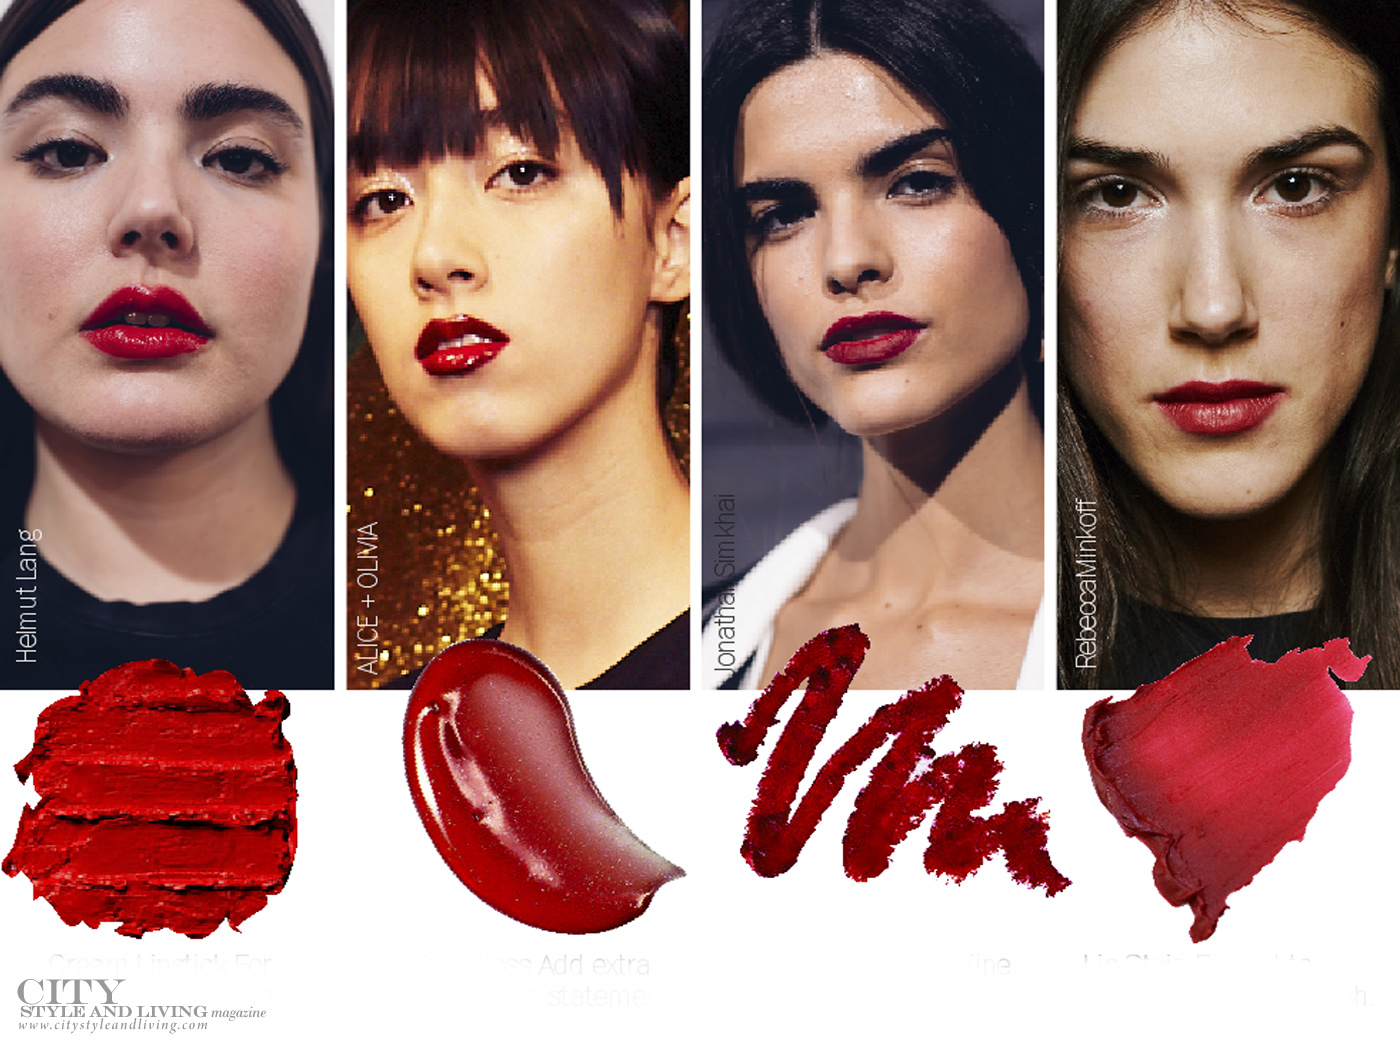 City Style and Living Magazine Beauty Runway Fall 2019 Red Lips